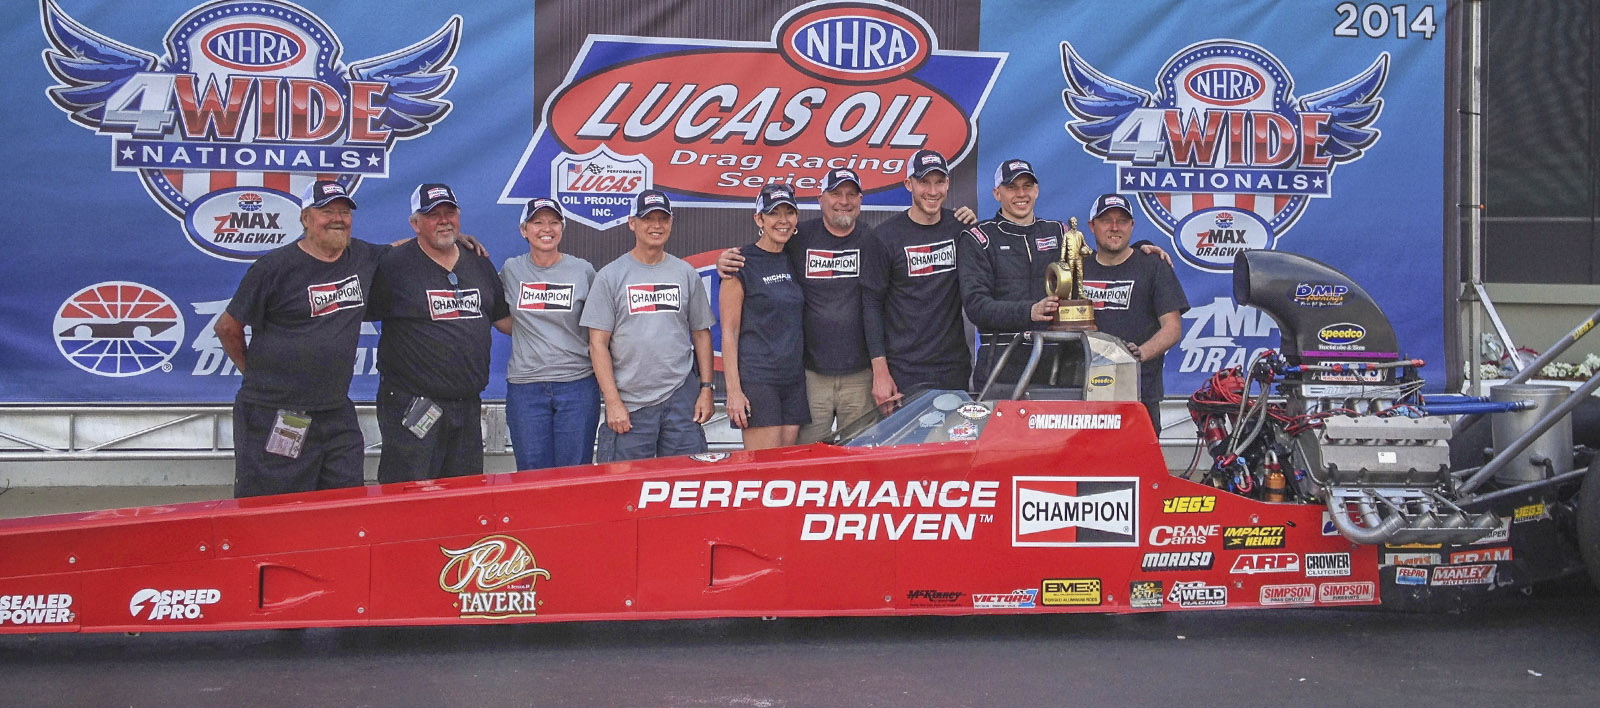 MBR shared the Winner's Circle with the Champion Spark Plugs A/fuel Dragster, Dreher Motorsports, and team family members.